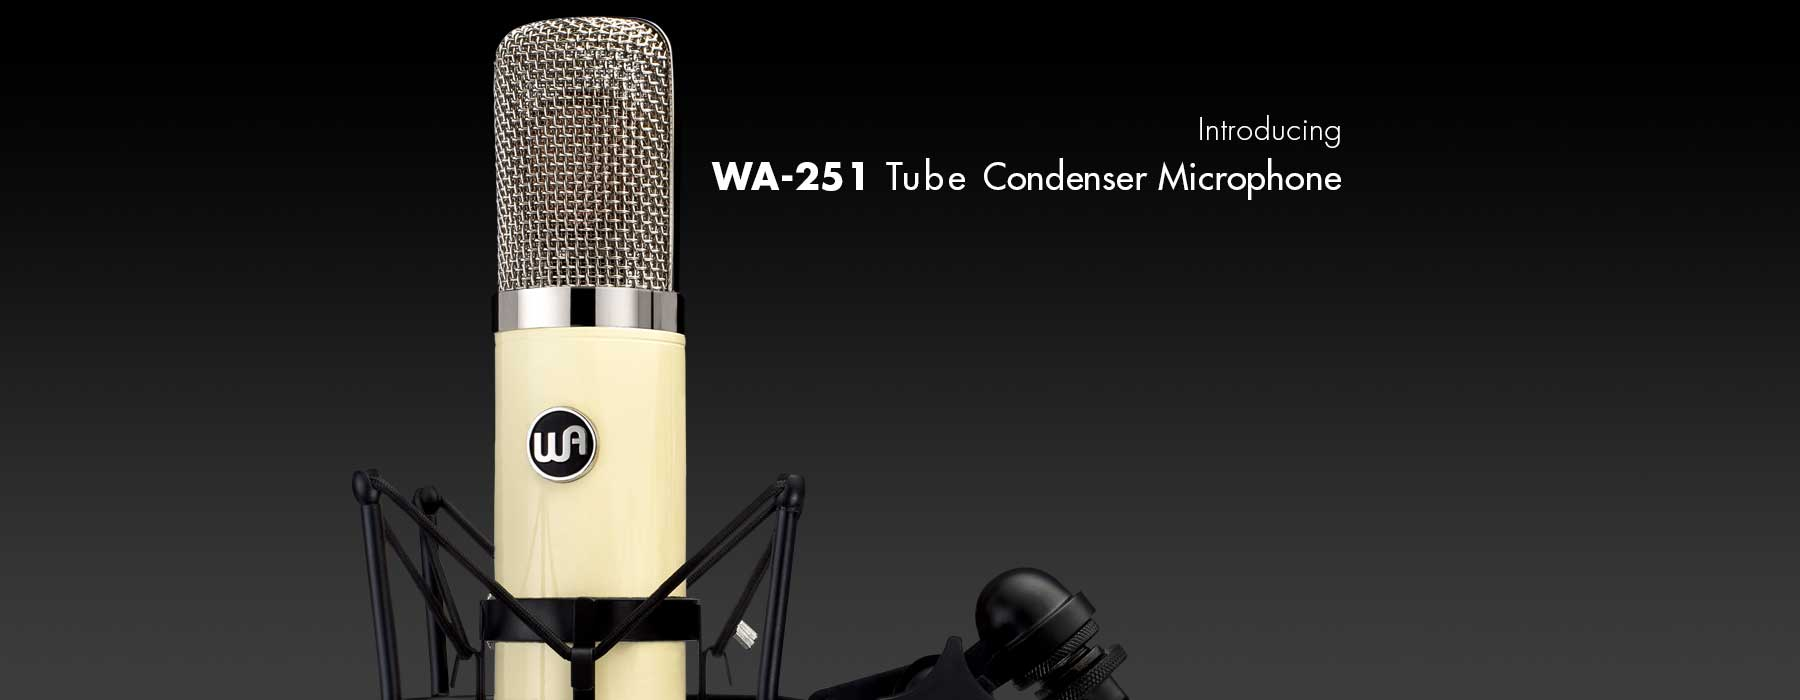 Warm Audio introduces the WA-251 Tube Condenser Microphone